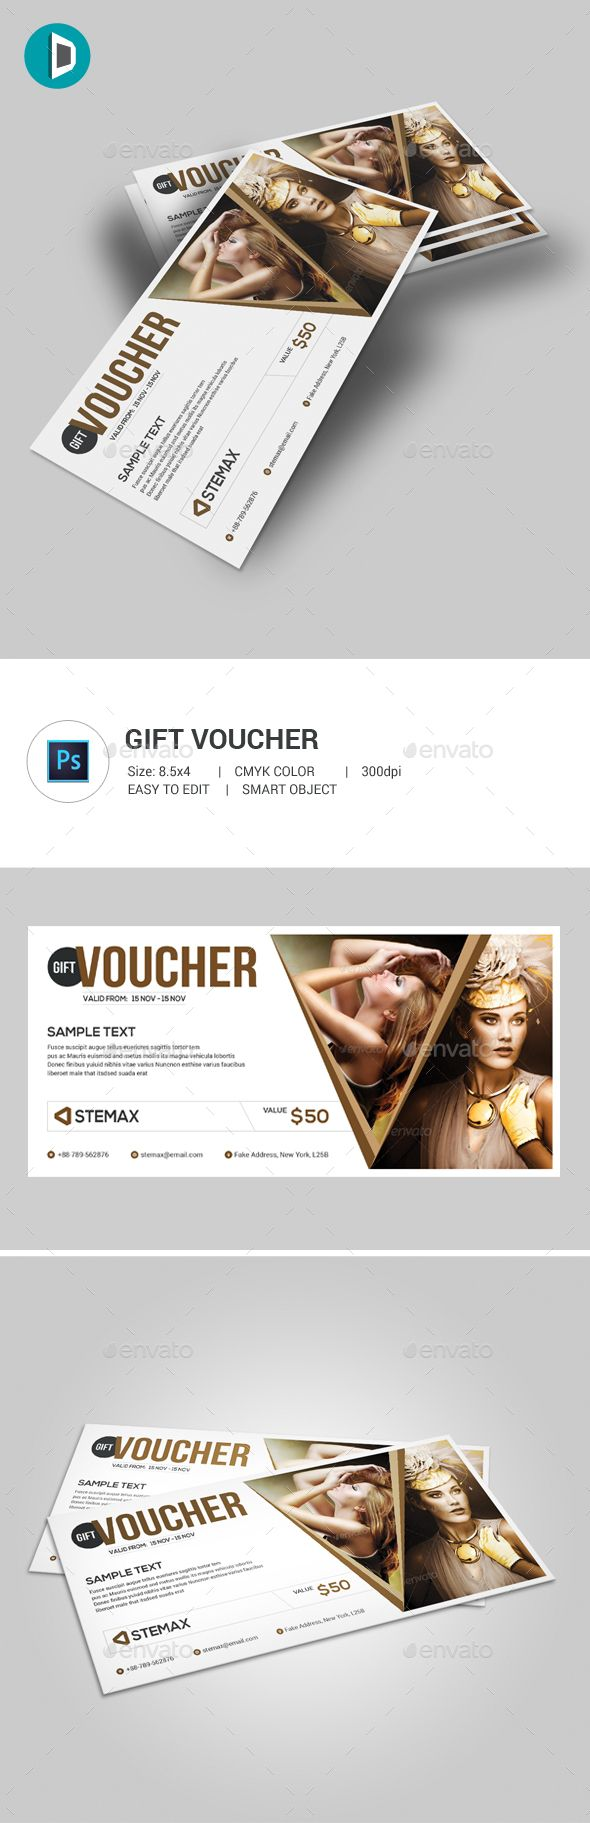 7 best VOUCHER images on Pinterest | Gift cards, Gift vouchers and ...